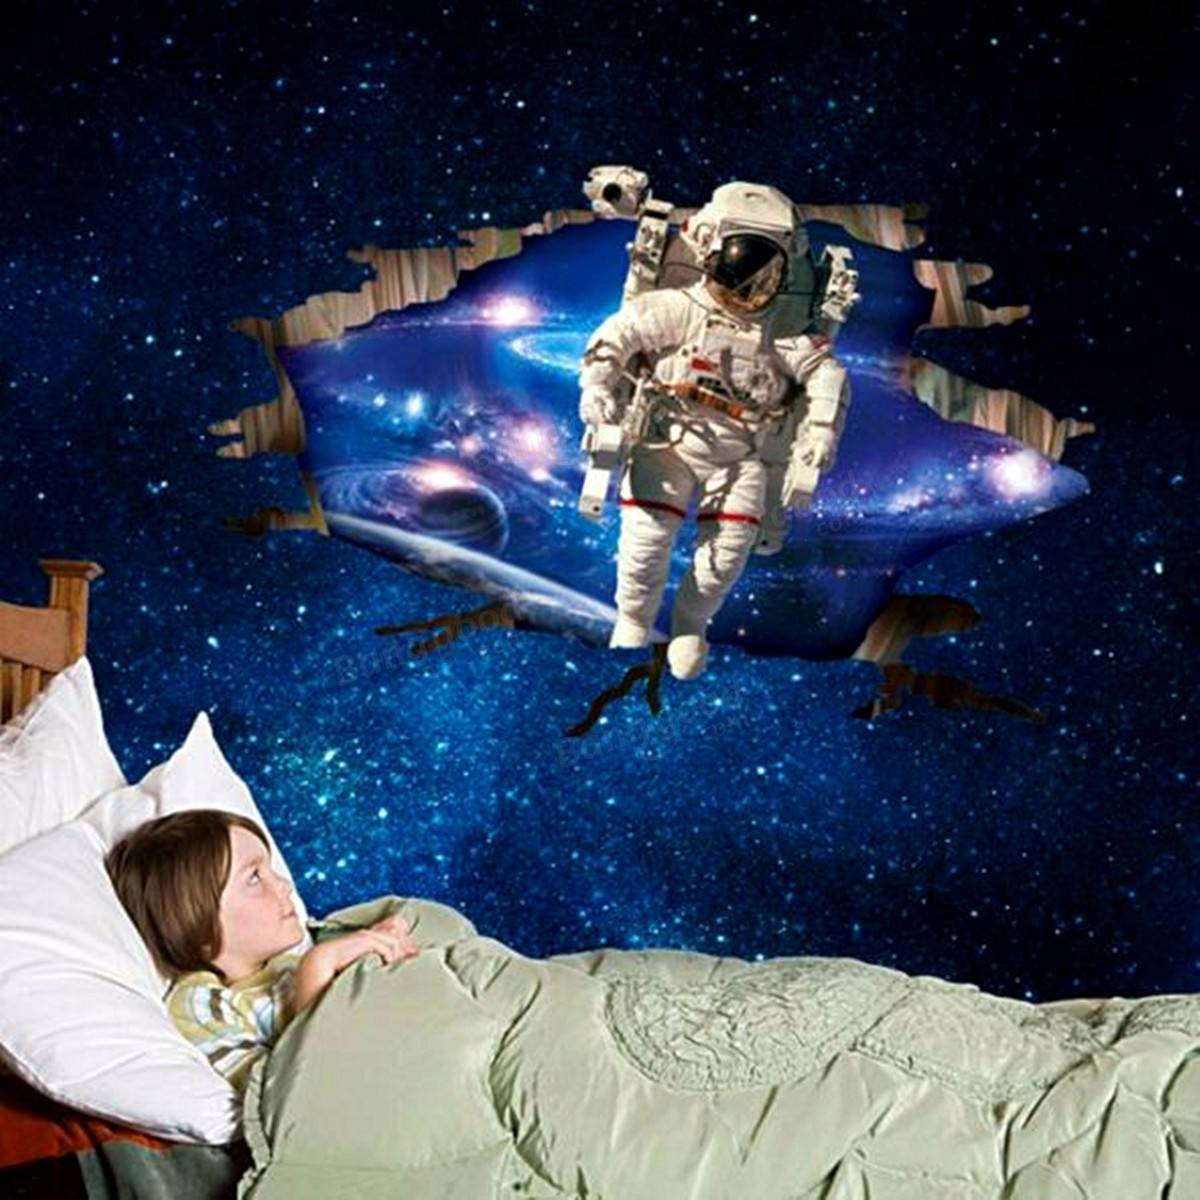 Outer Space Bedroom Decor Outer Space Bedroom Decor Nrysinfo